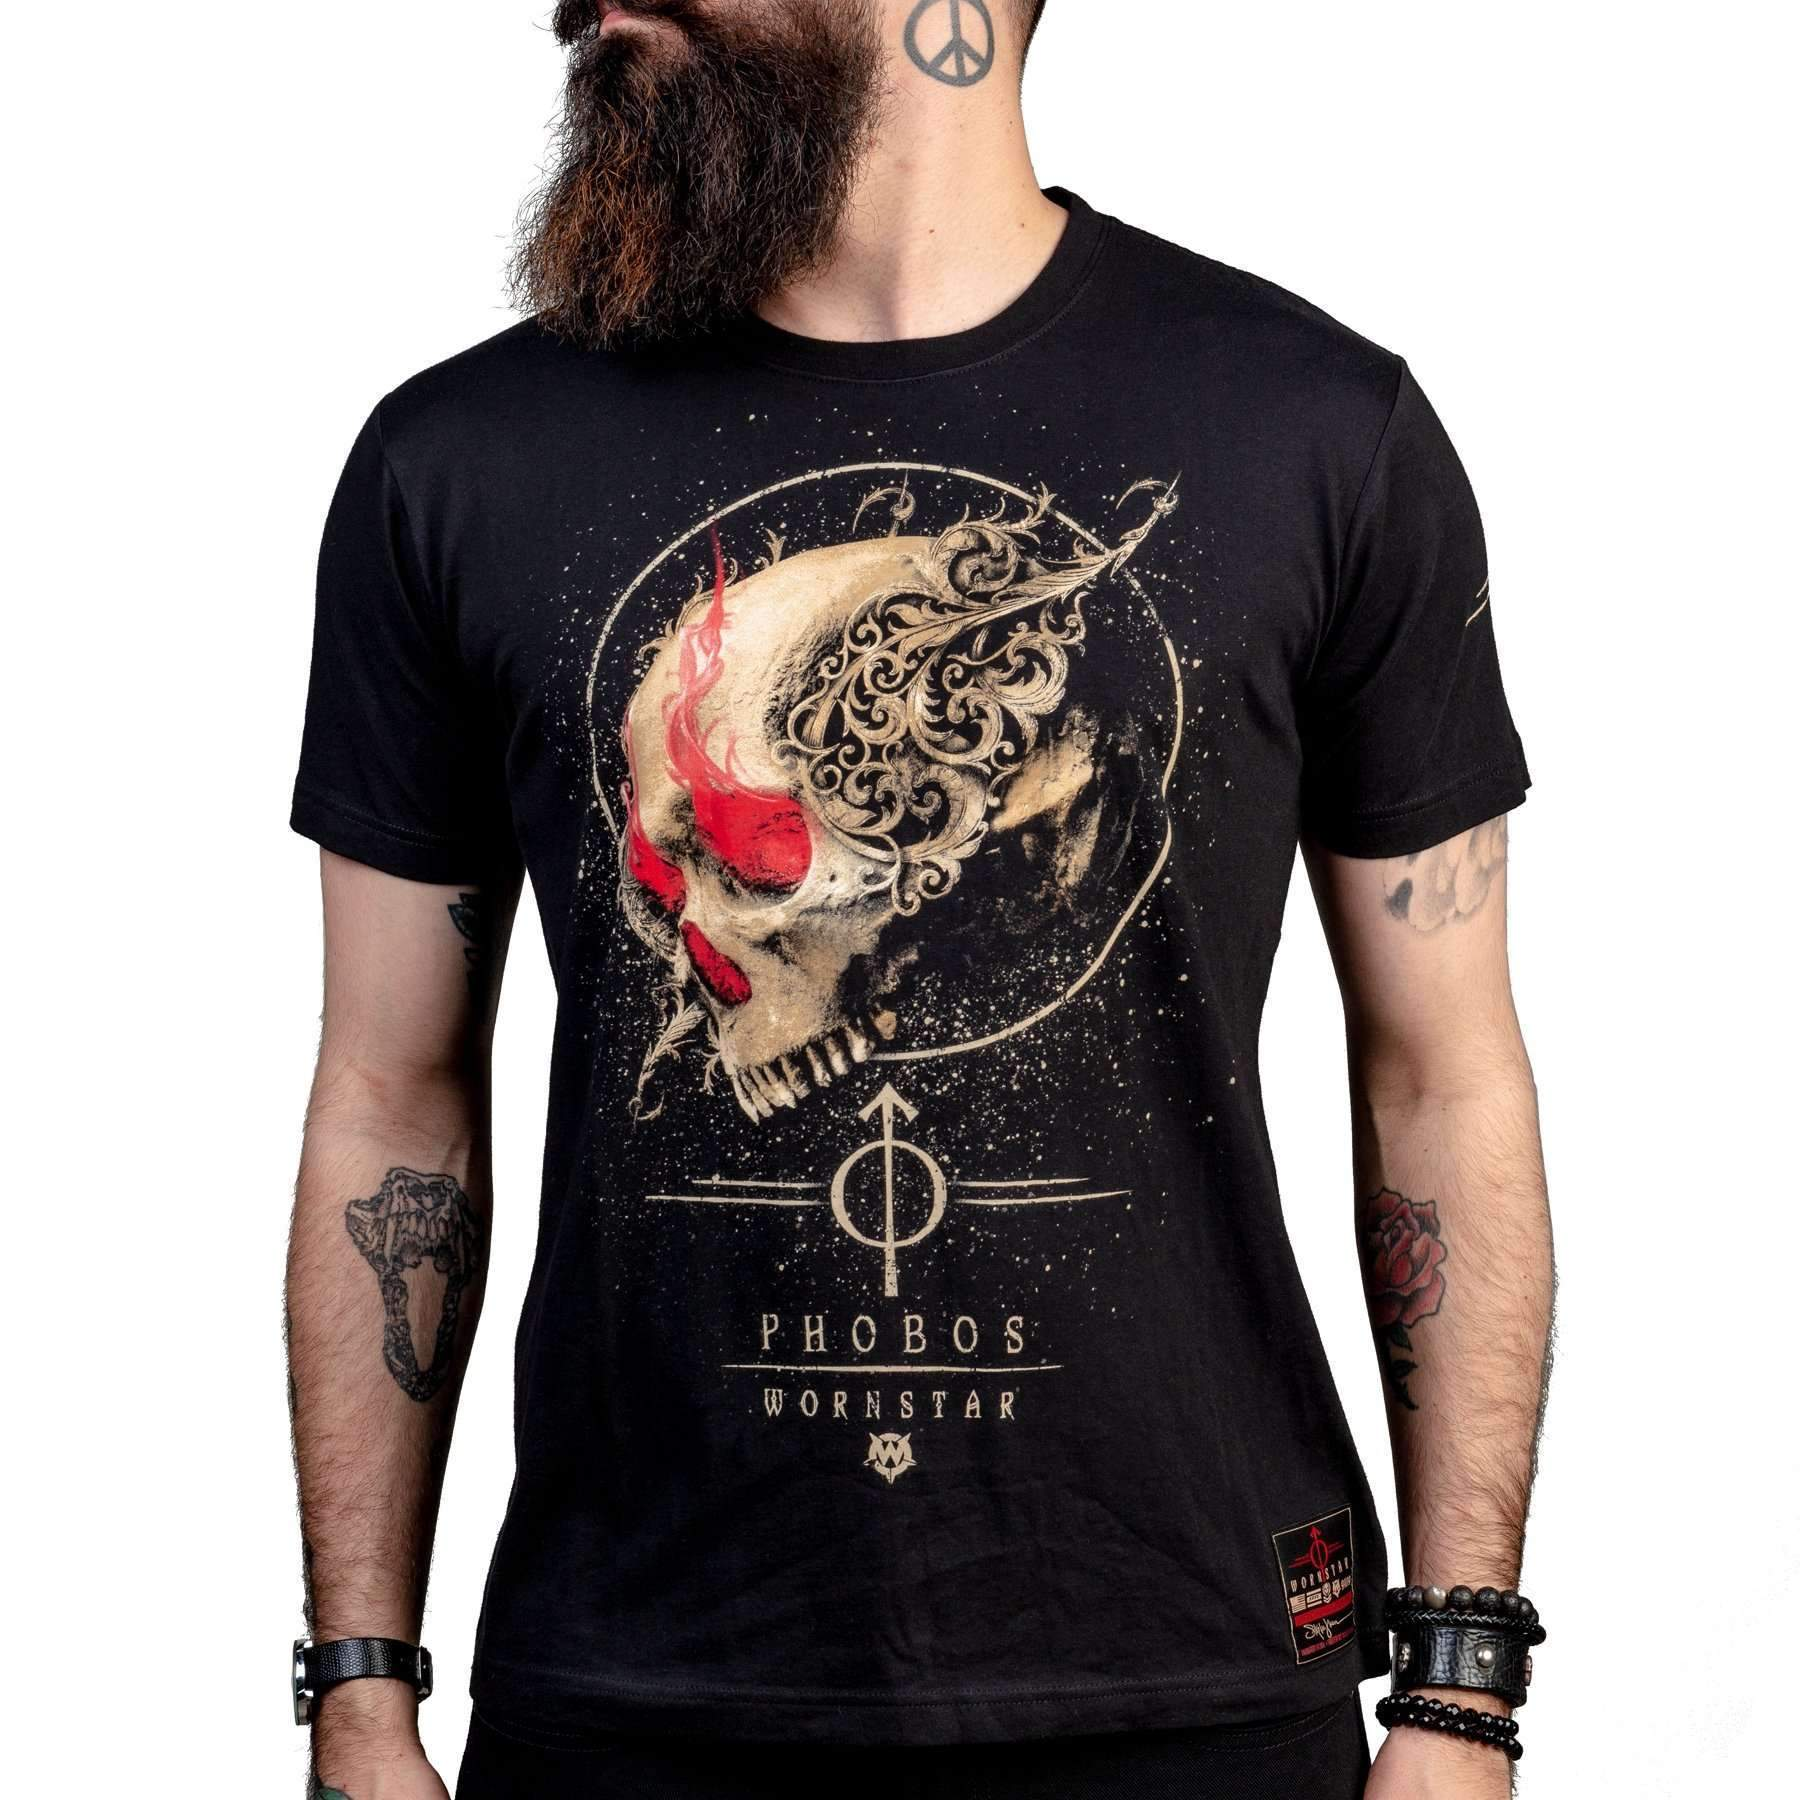 Wornstar Phobos Rock and Roll T-shirt